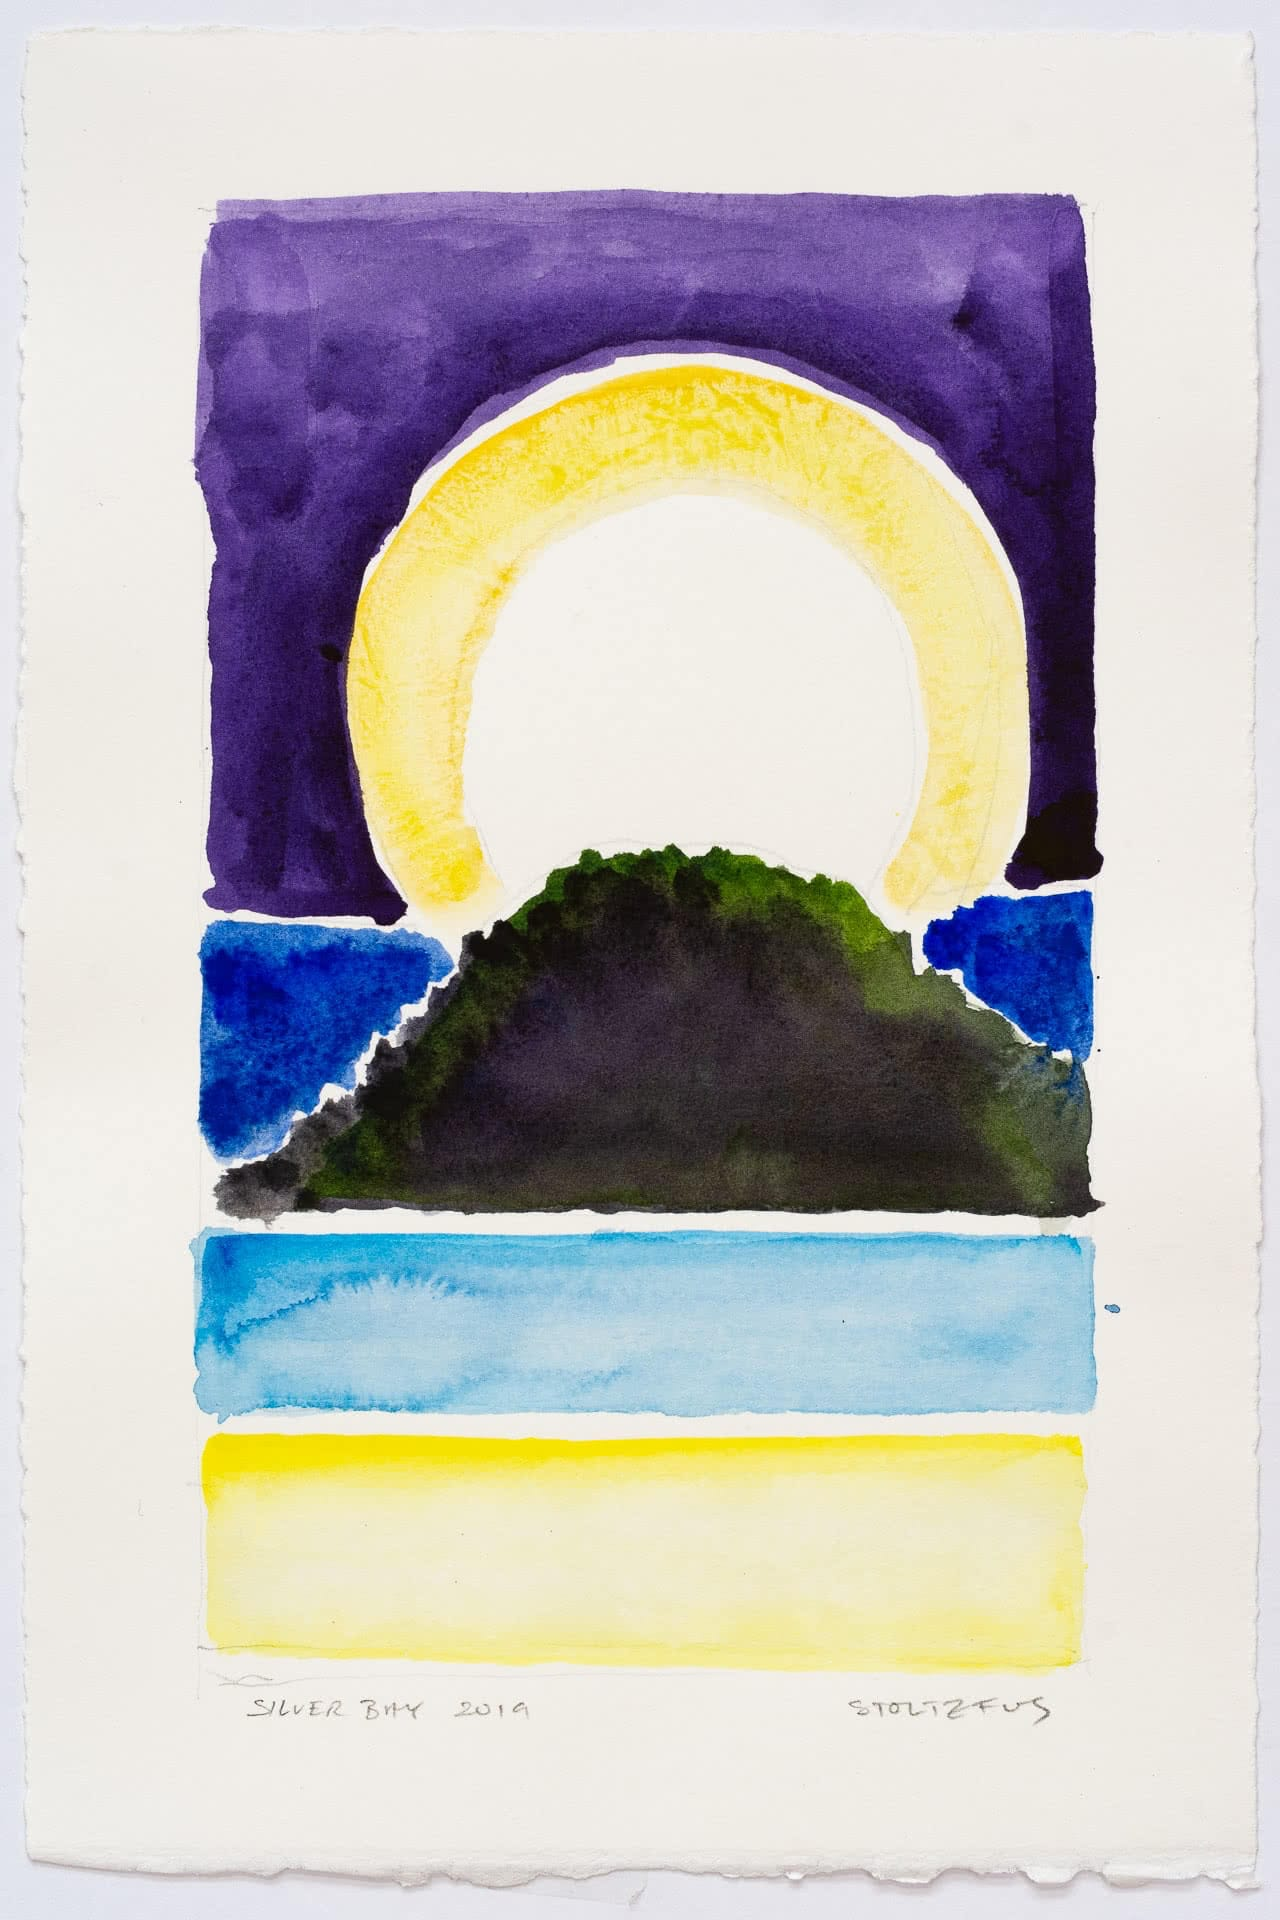 Silver Bay 2019-S6 by Randall Stoltzfus | Watercolor on paper, 11 by 7.5 inches